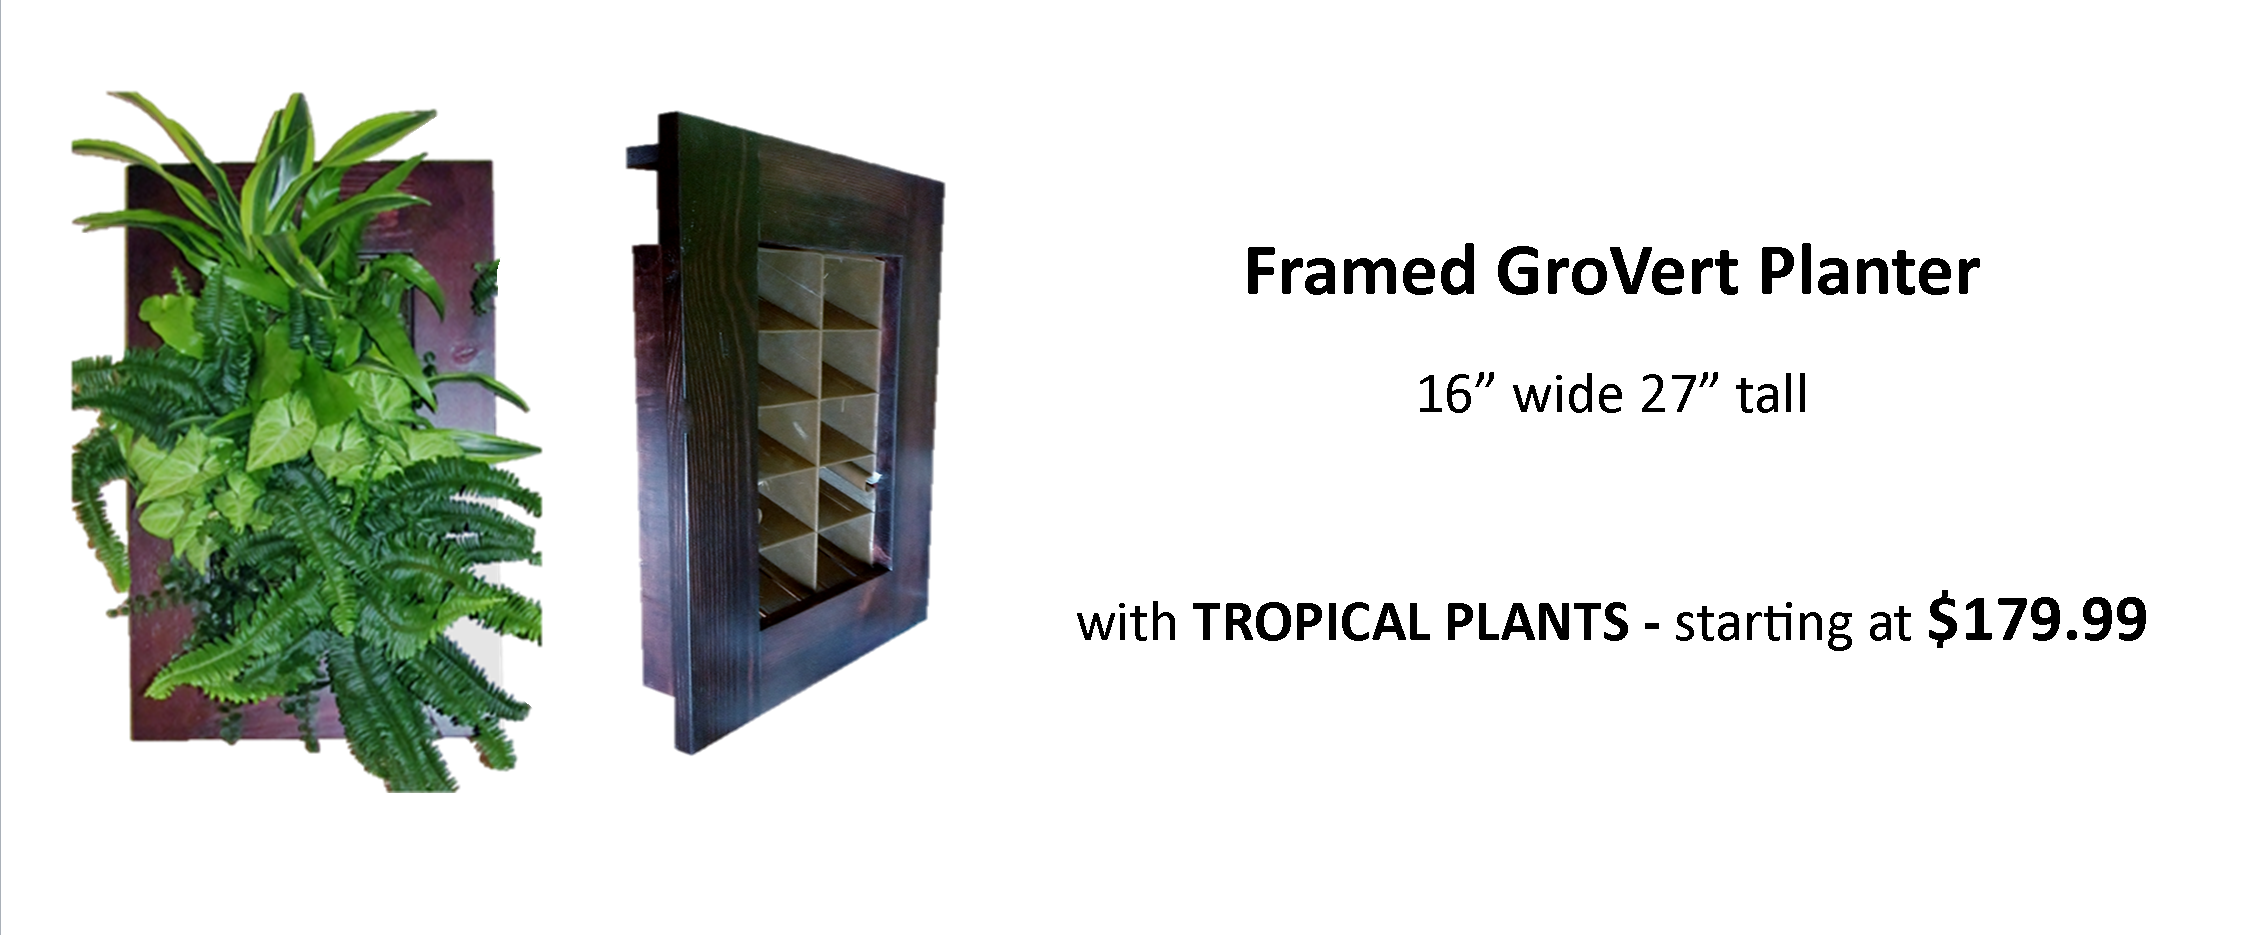 Living Wall Planter for Easy Vertical Gardens Pre Planted with Tropical Plants for Indoor or Outdoor Use with Frame and Watering System